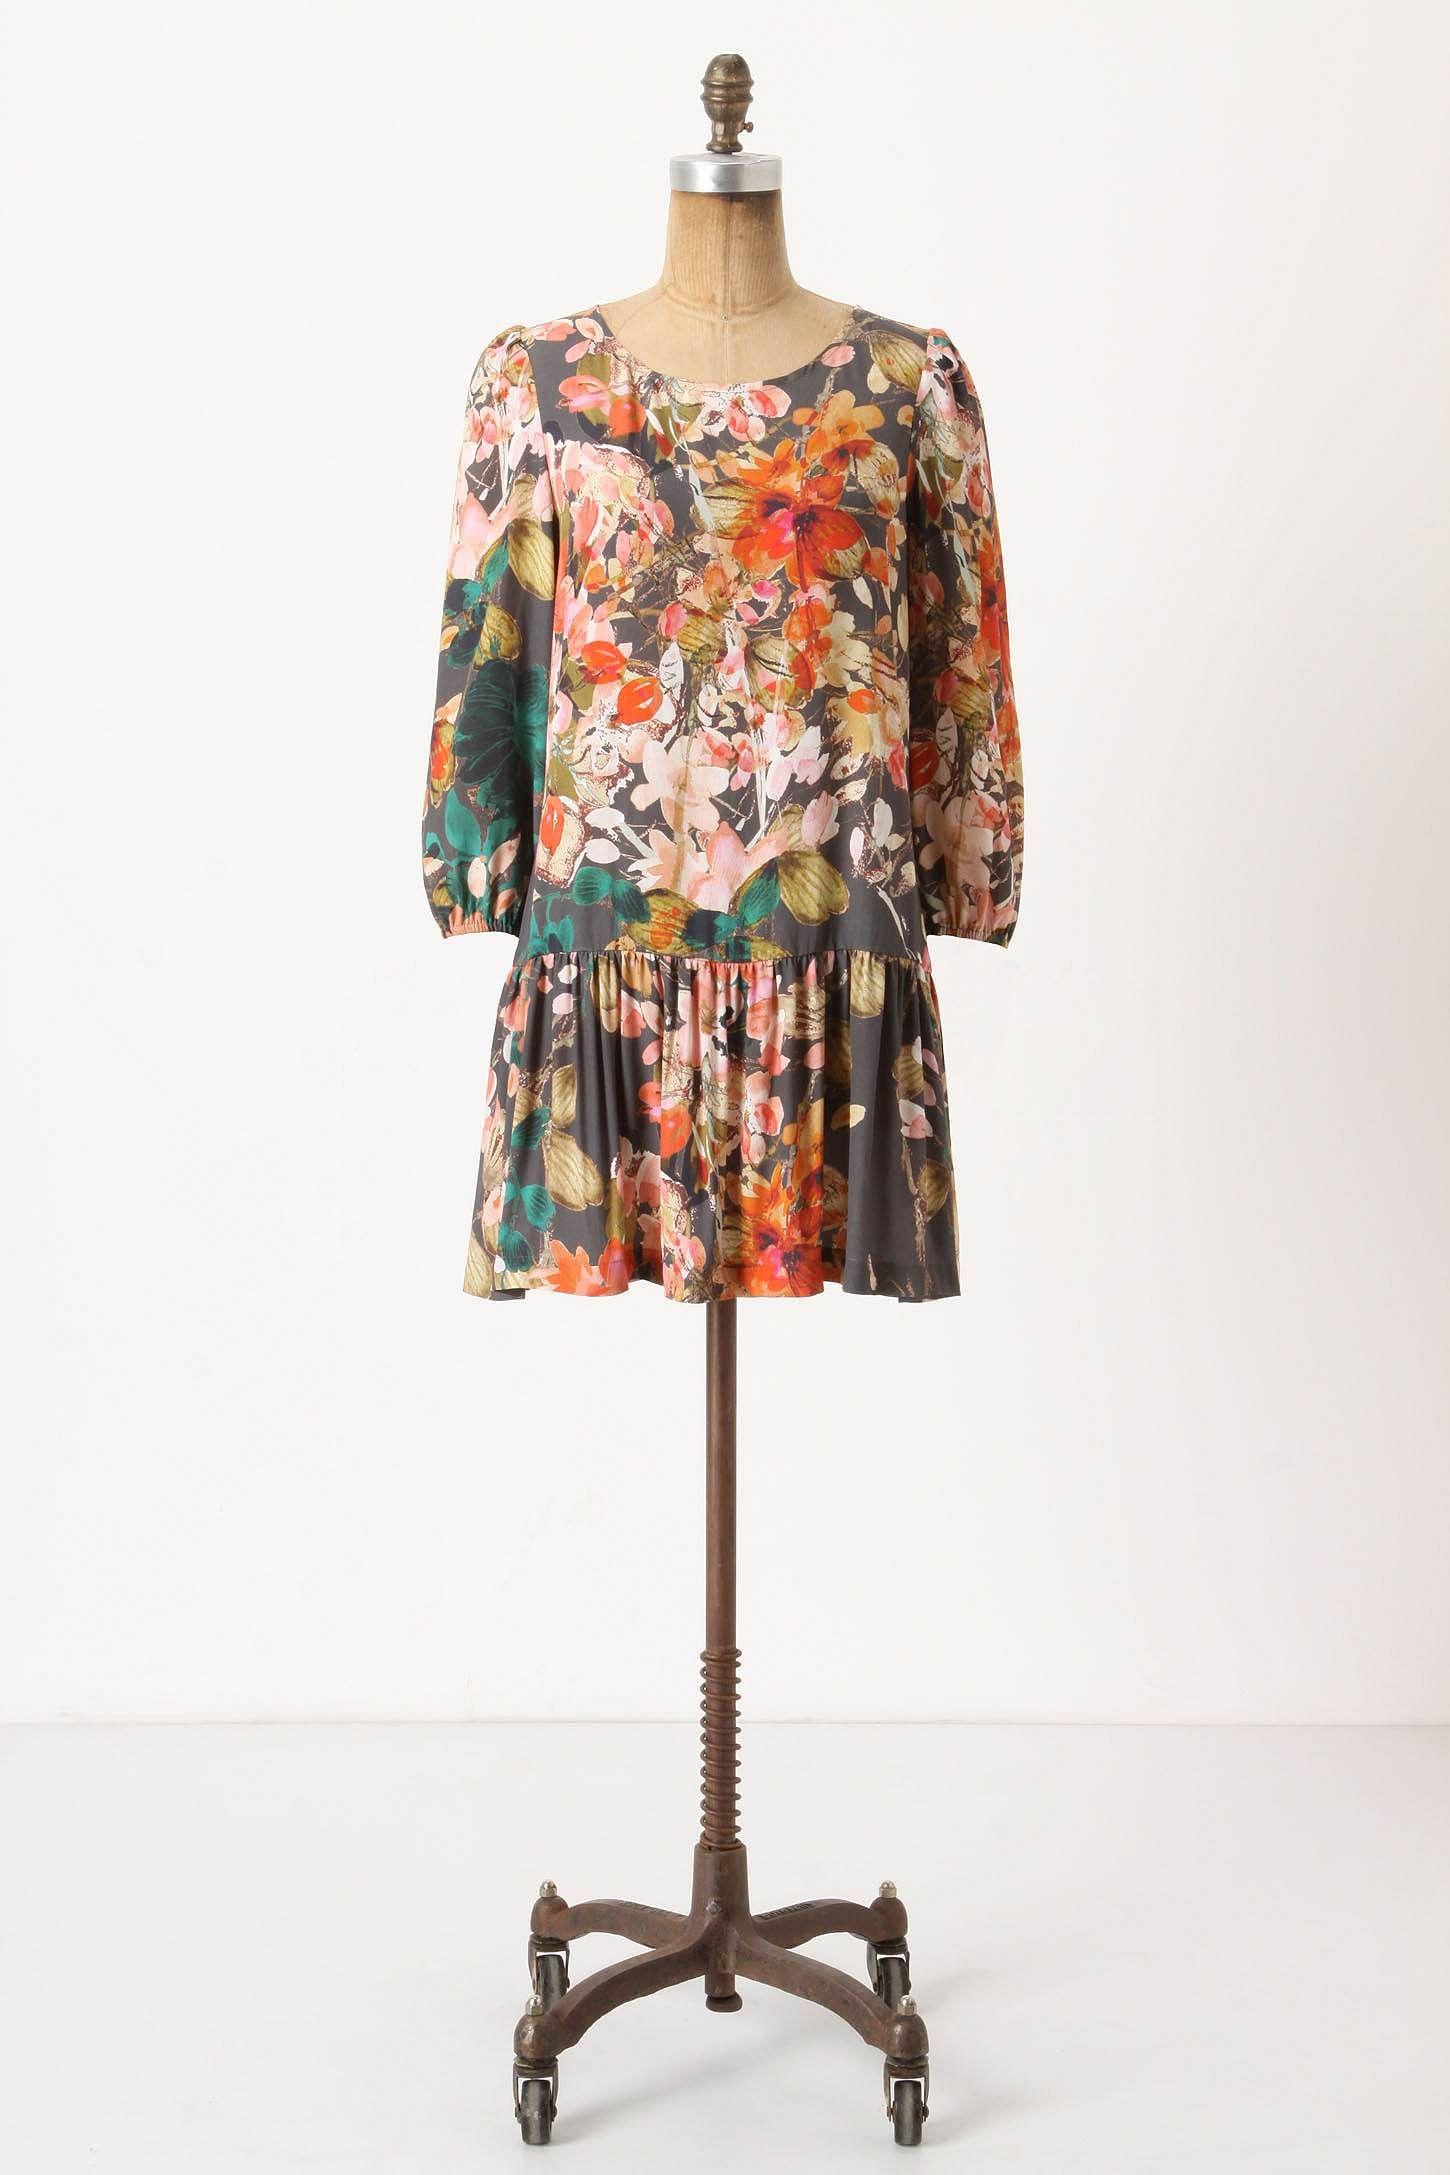 Dropwaist dress my style pinboard pinterest anthropologie